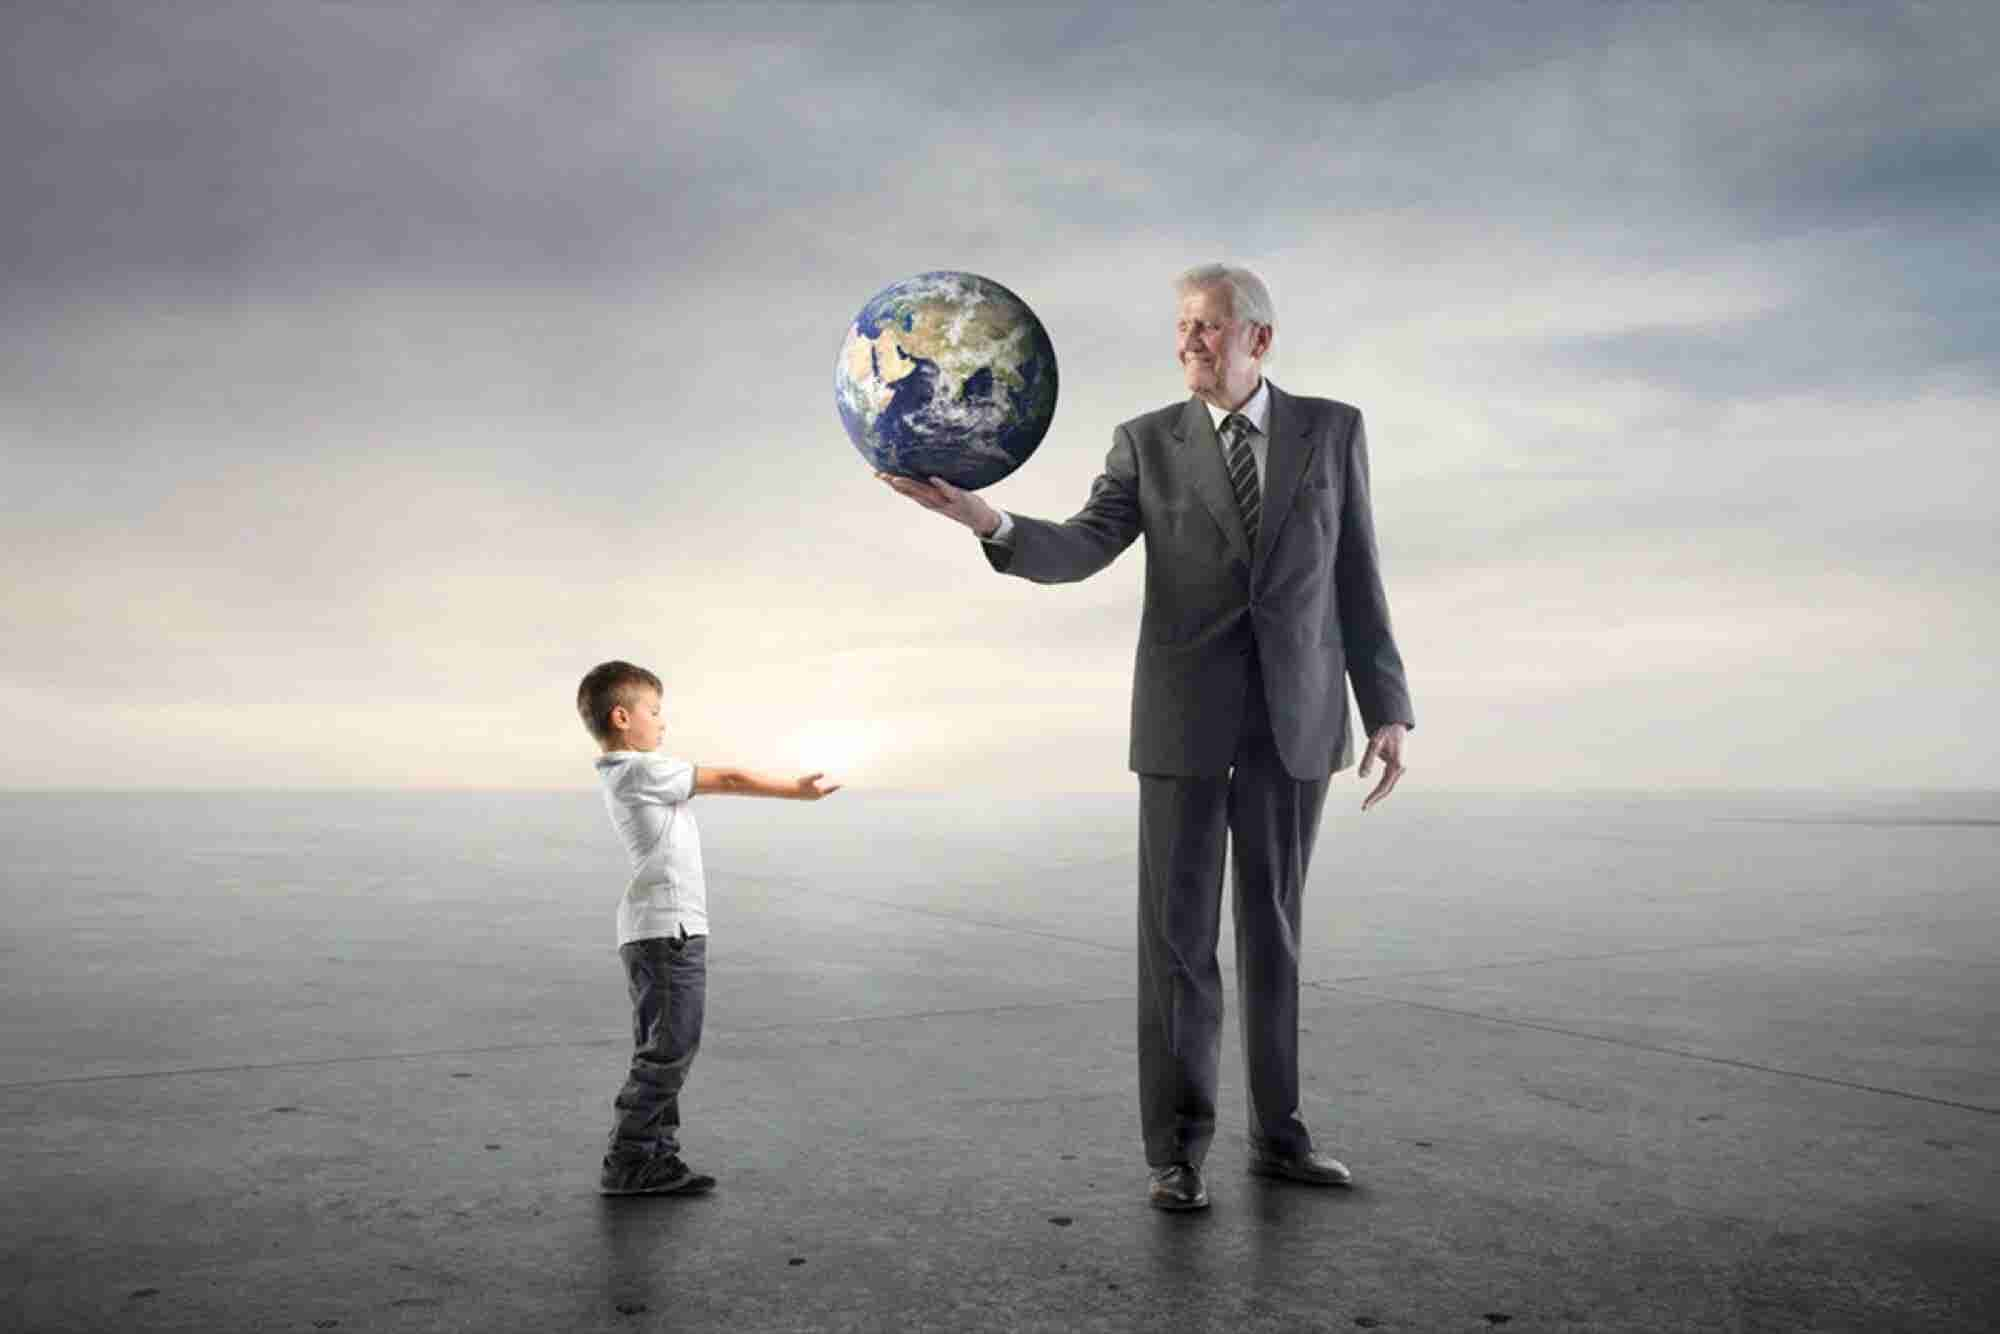 Lost Knowledge Of Departing Experts – Consequences And Questions